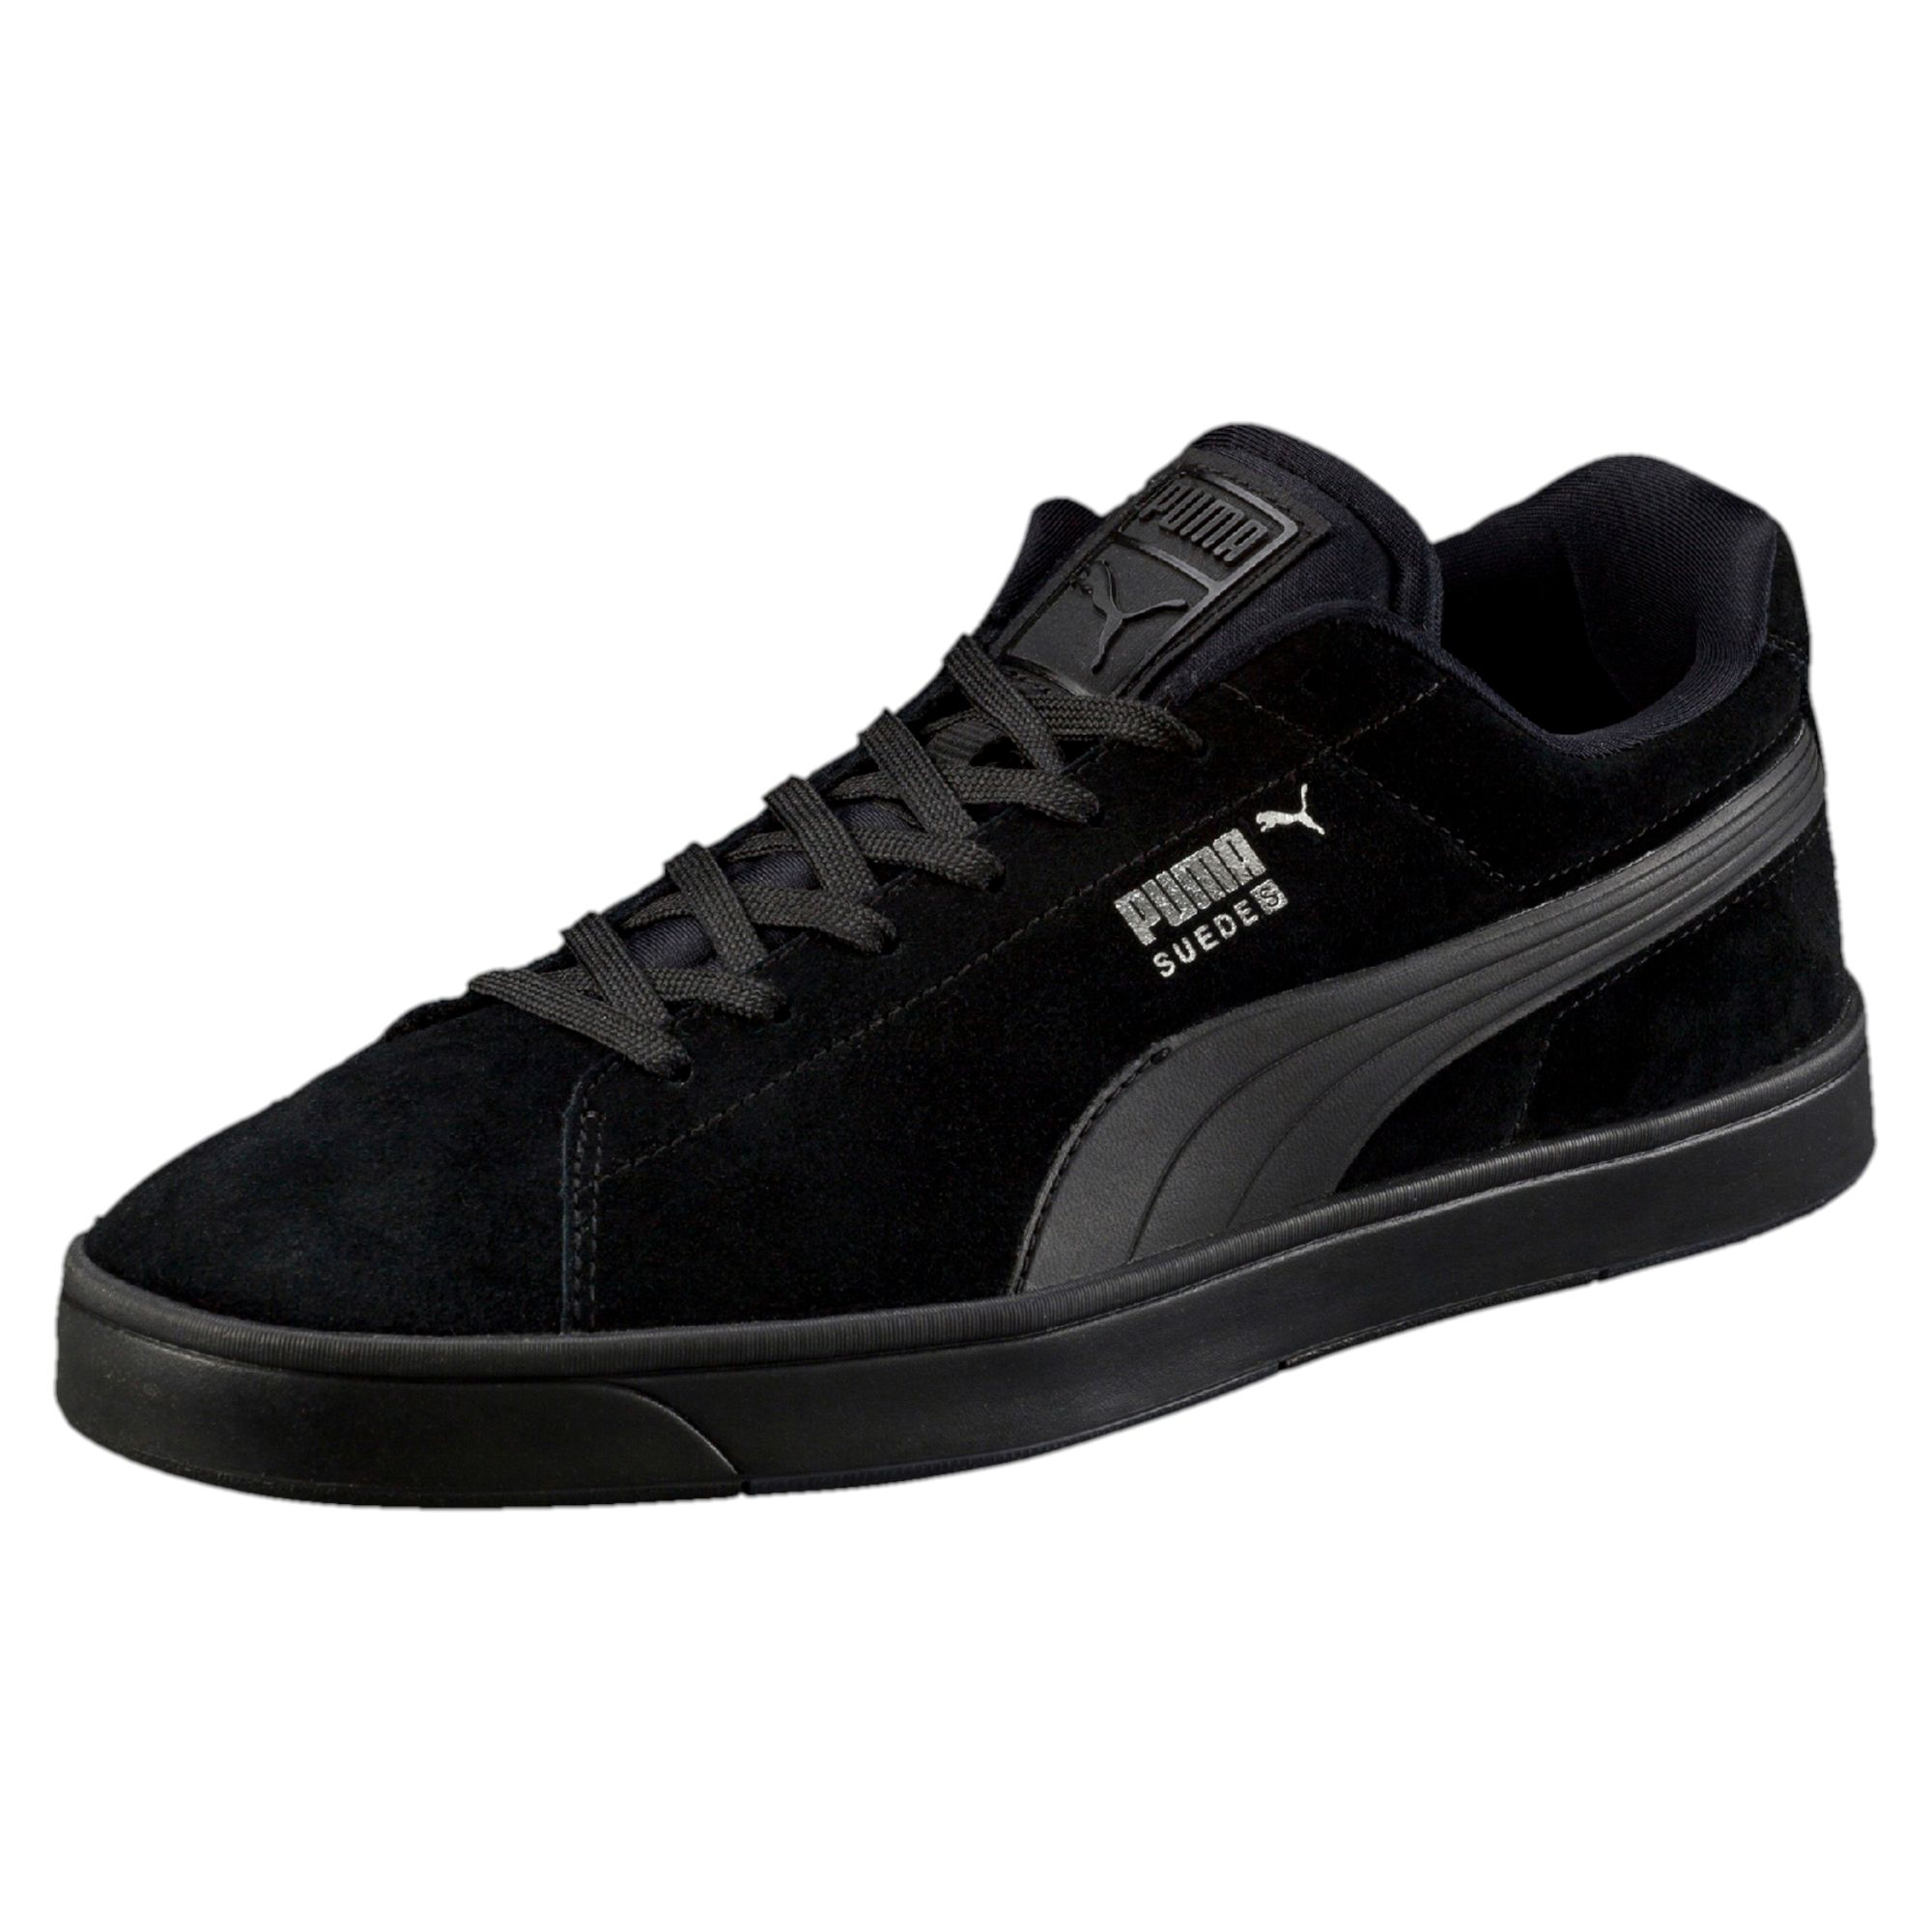 PUMA-Suede-S-Trainers-FOOTWEAR-New-Arrivals-Evolution-